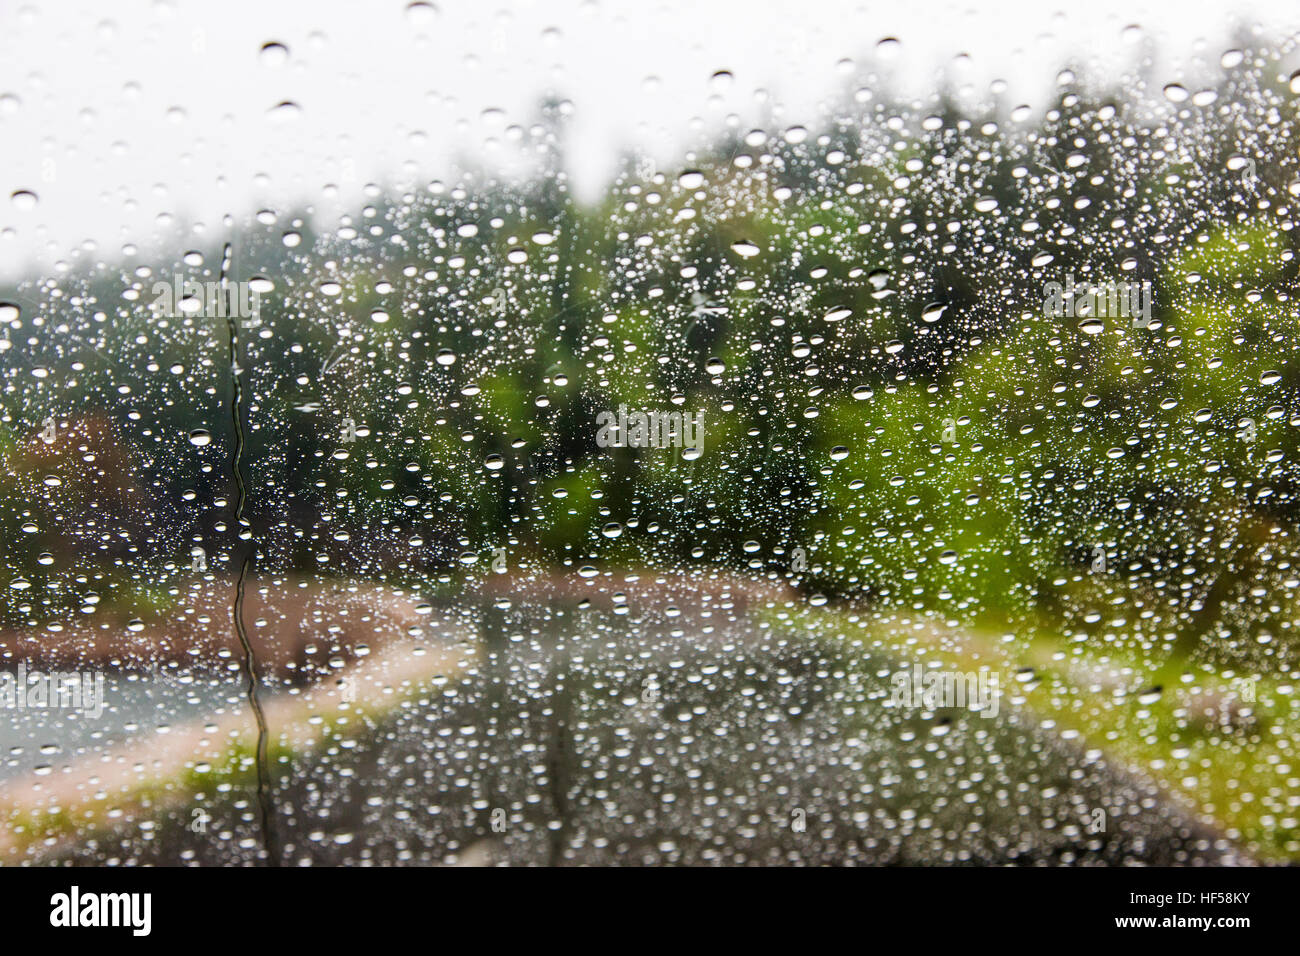 Water droplets on the windshield of an automobile - Stock Image